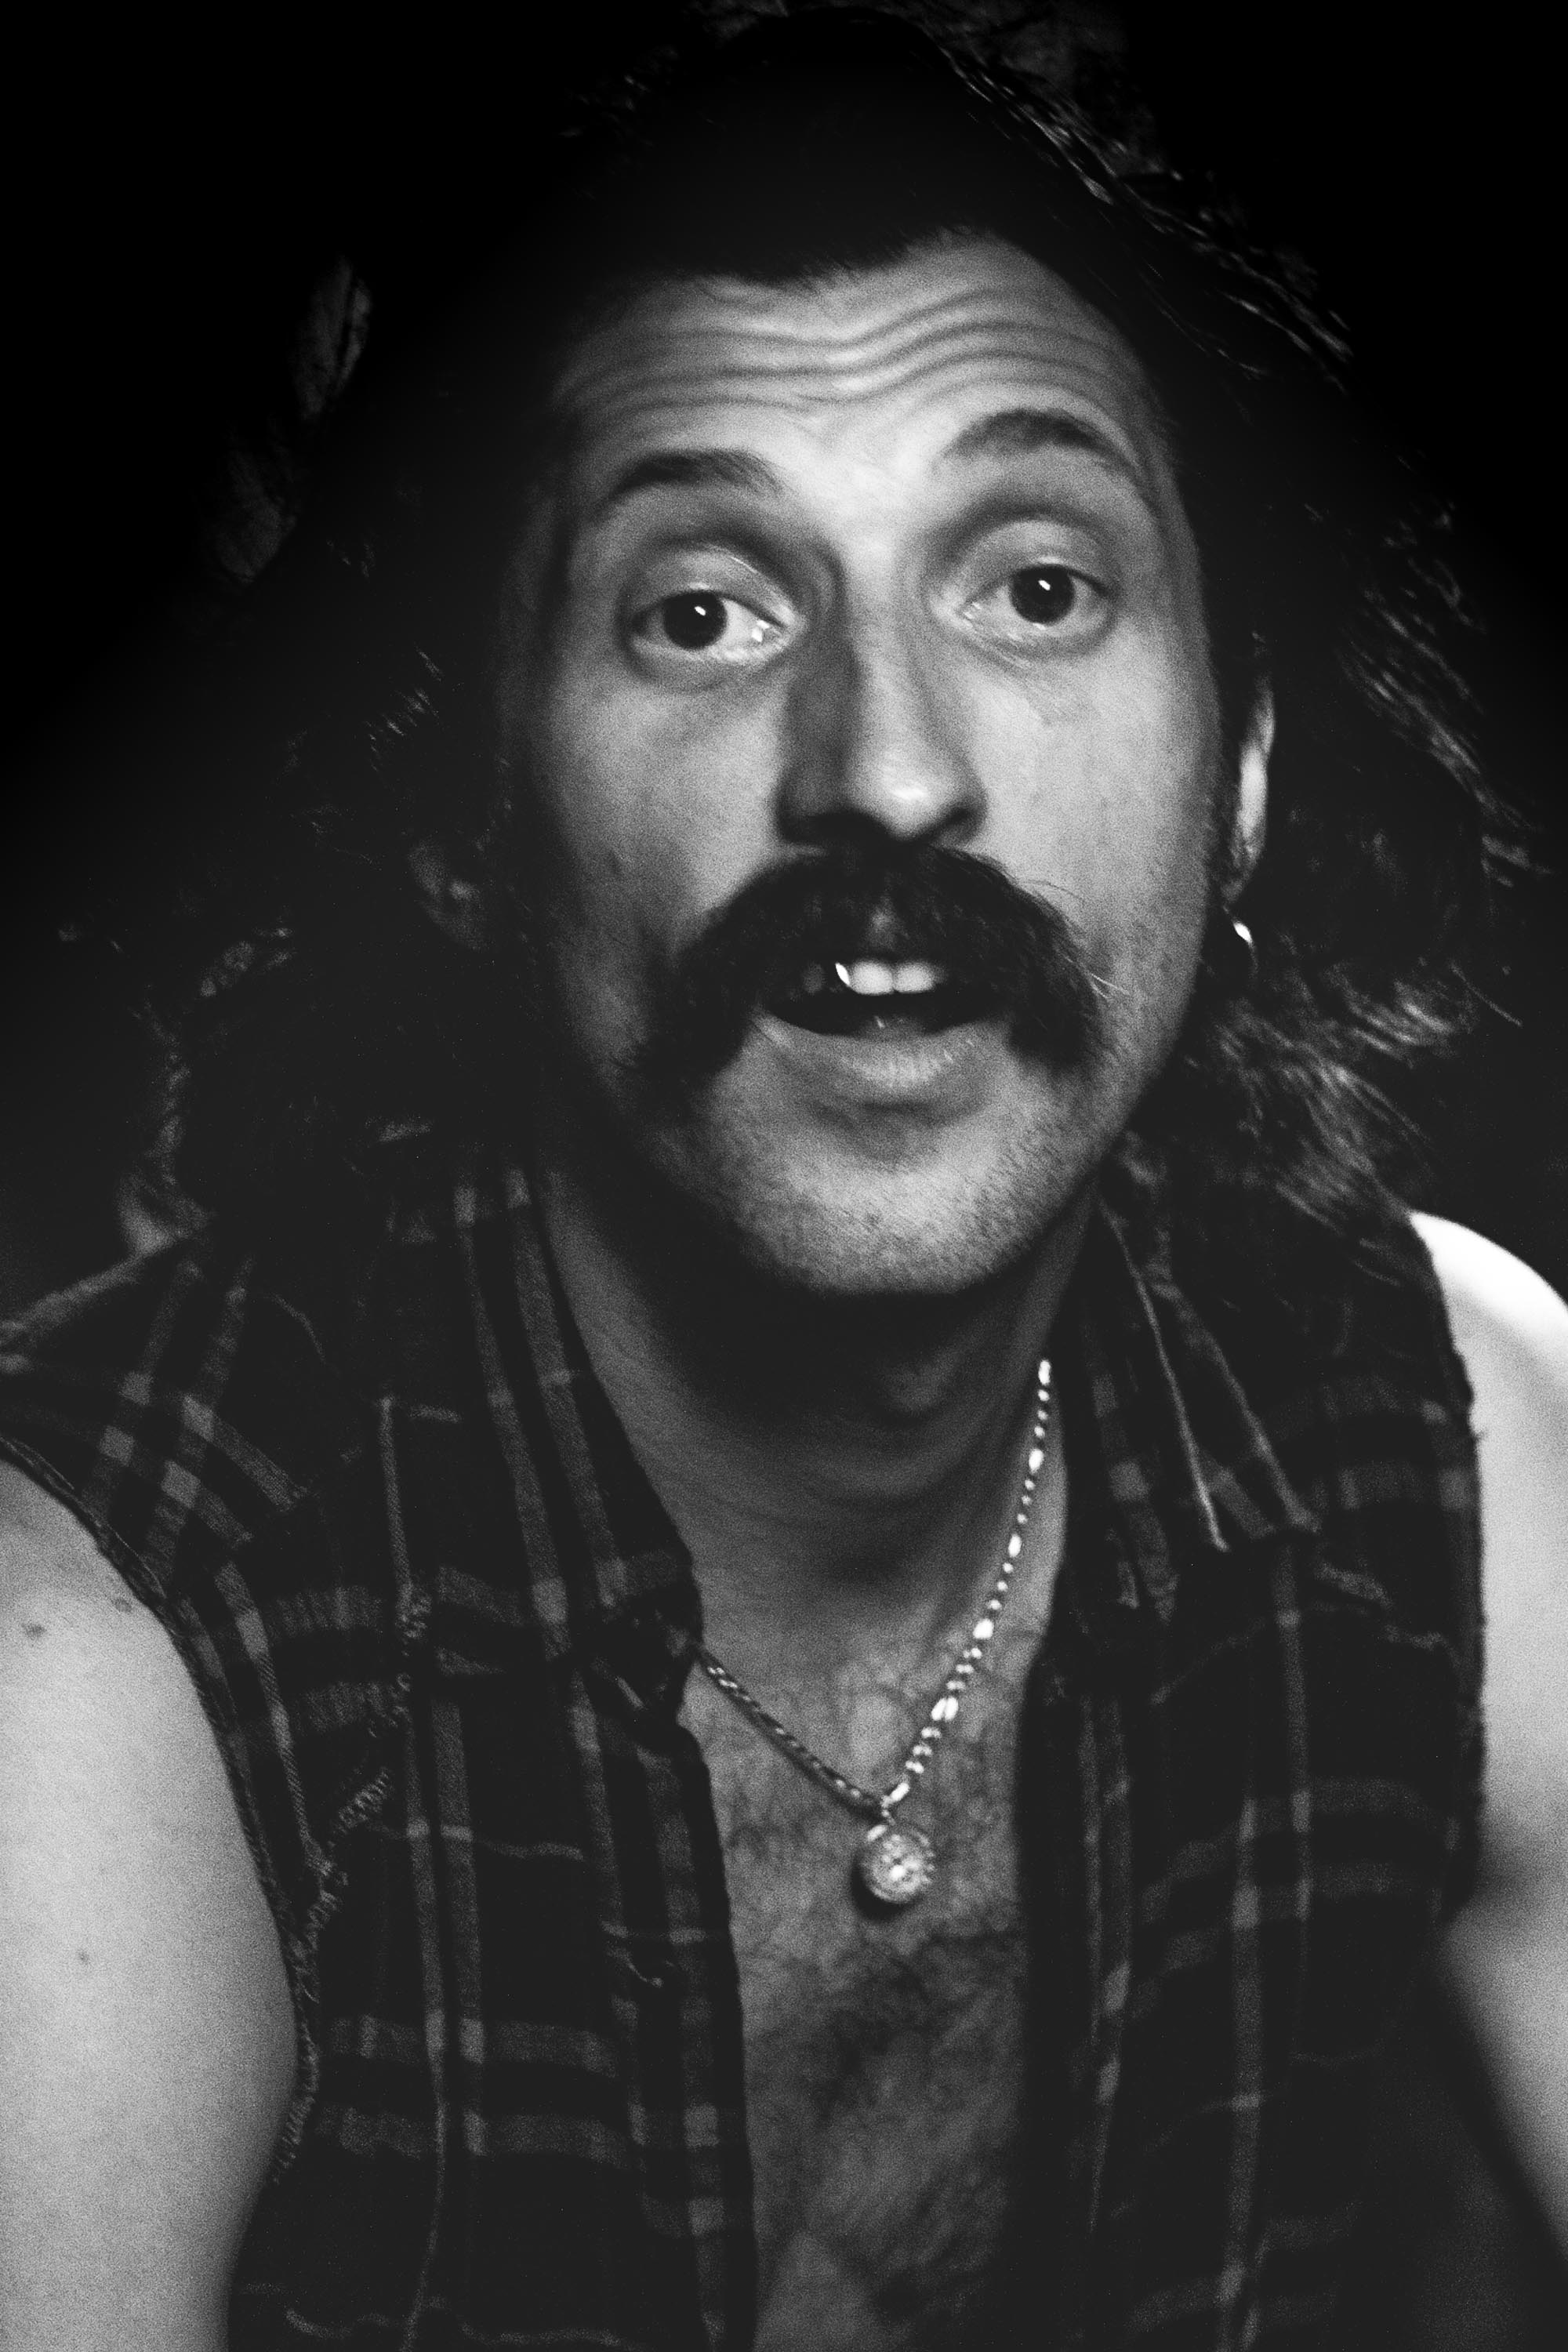 GOGOL_BORDELLO_PORTRAIT_2009-3.jpg